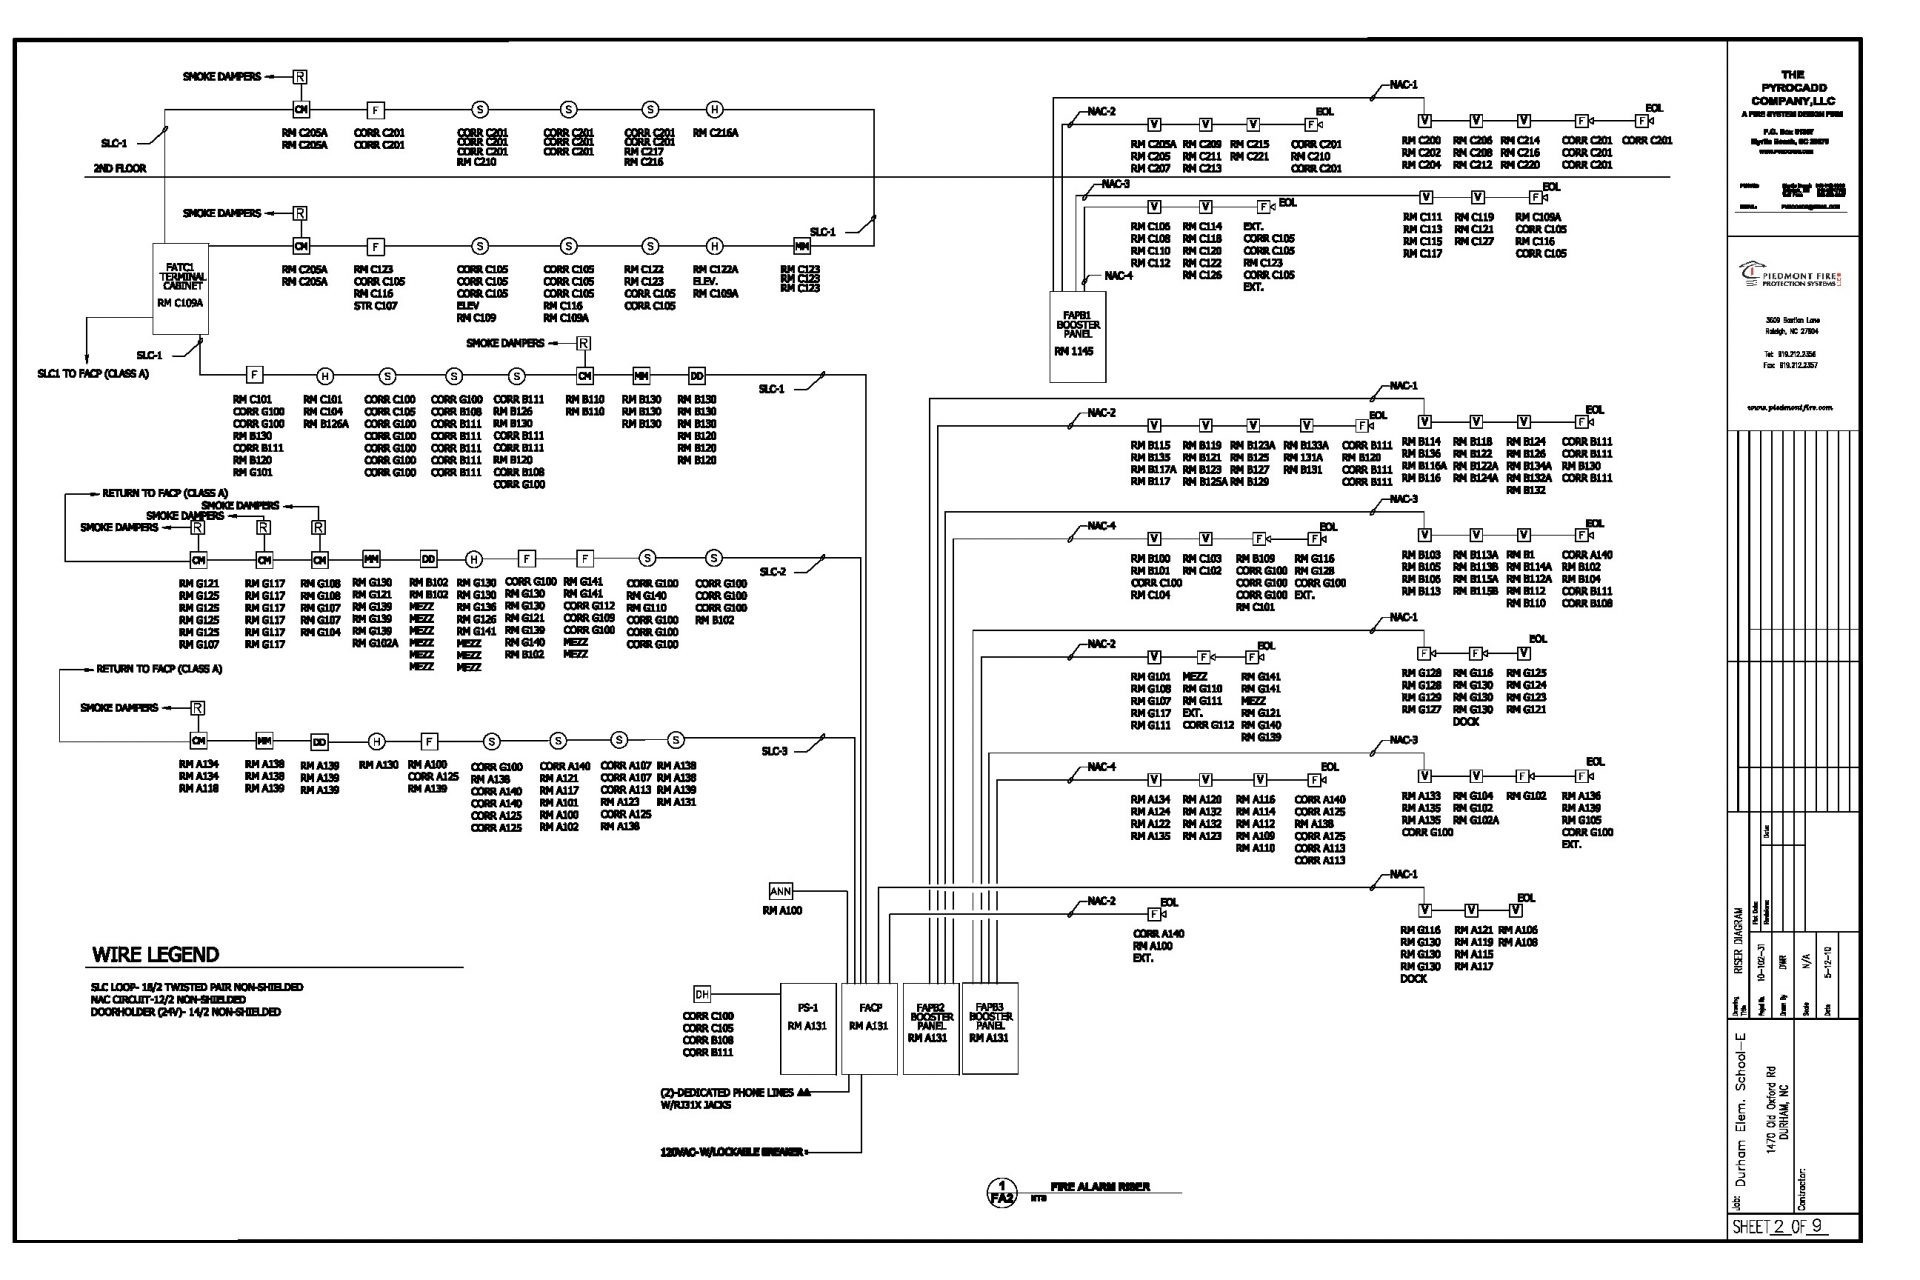 addressable fire alarm wiring diagram fitfathers toyota diagrams download class b free pull station basic